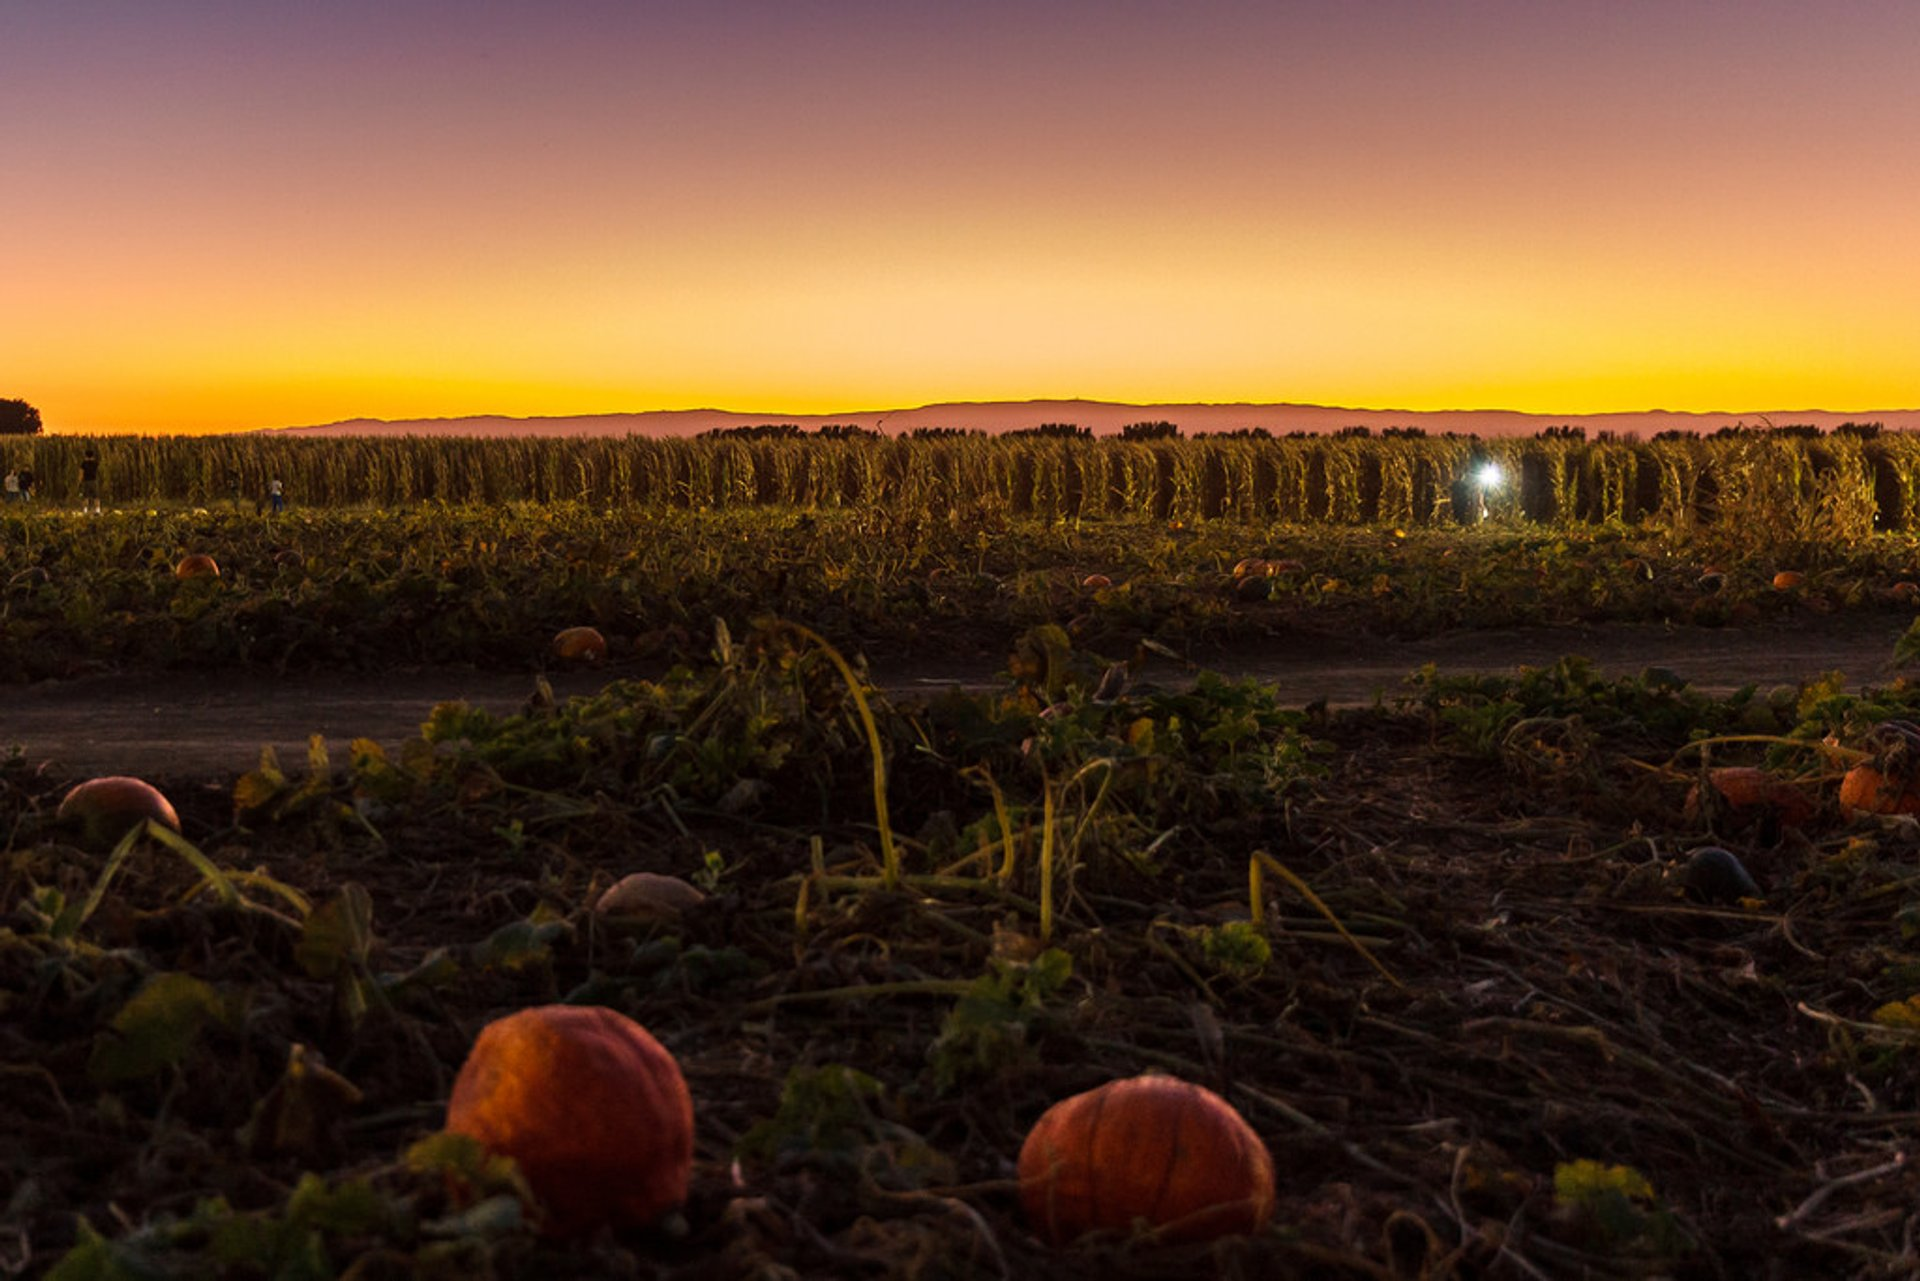 Cool Patch Pumpkins Corn Maze in California - Best Season 2020